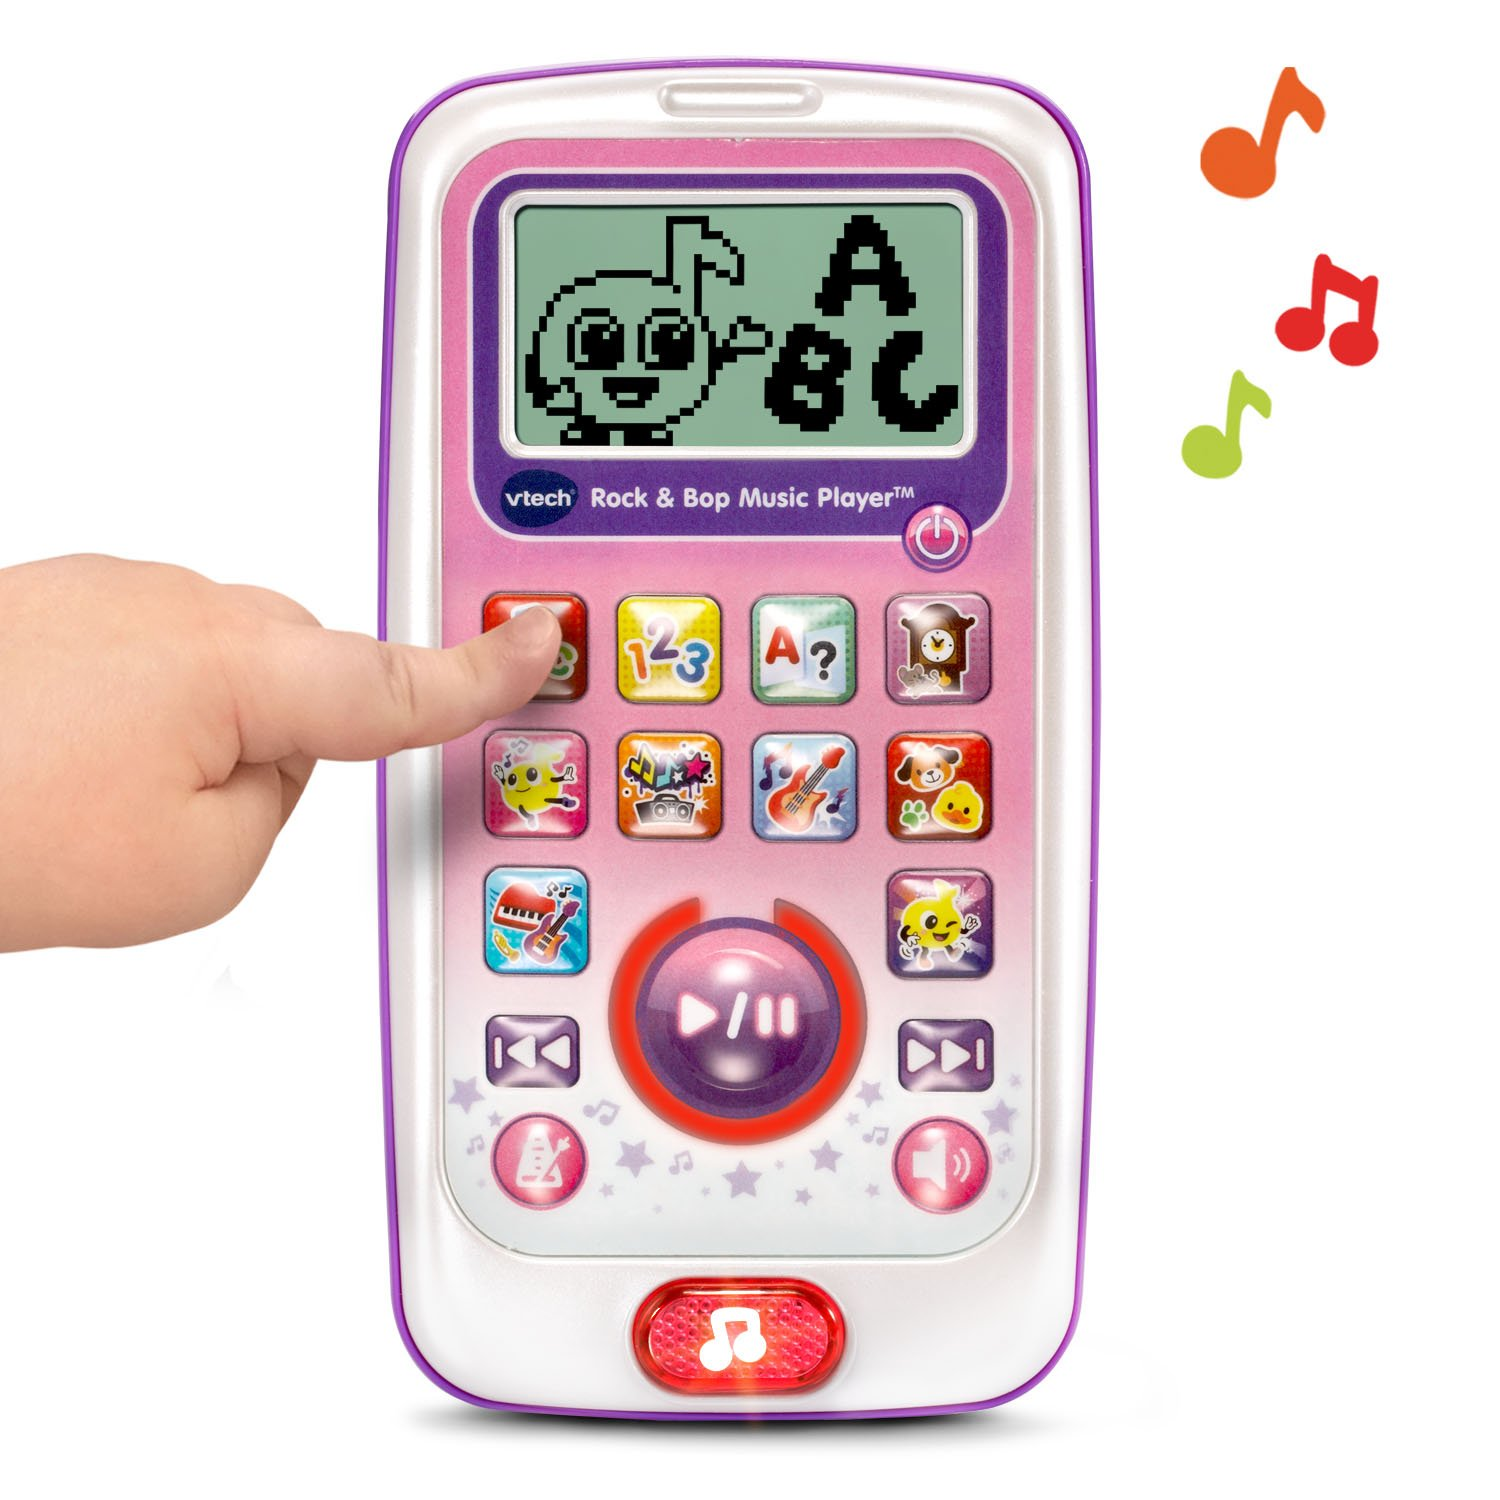 VTech Rock and Bop Music Player Amazon Exclusive, Pink by VTech (Image #3)